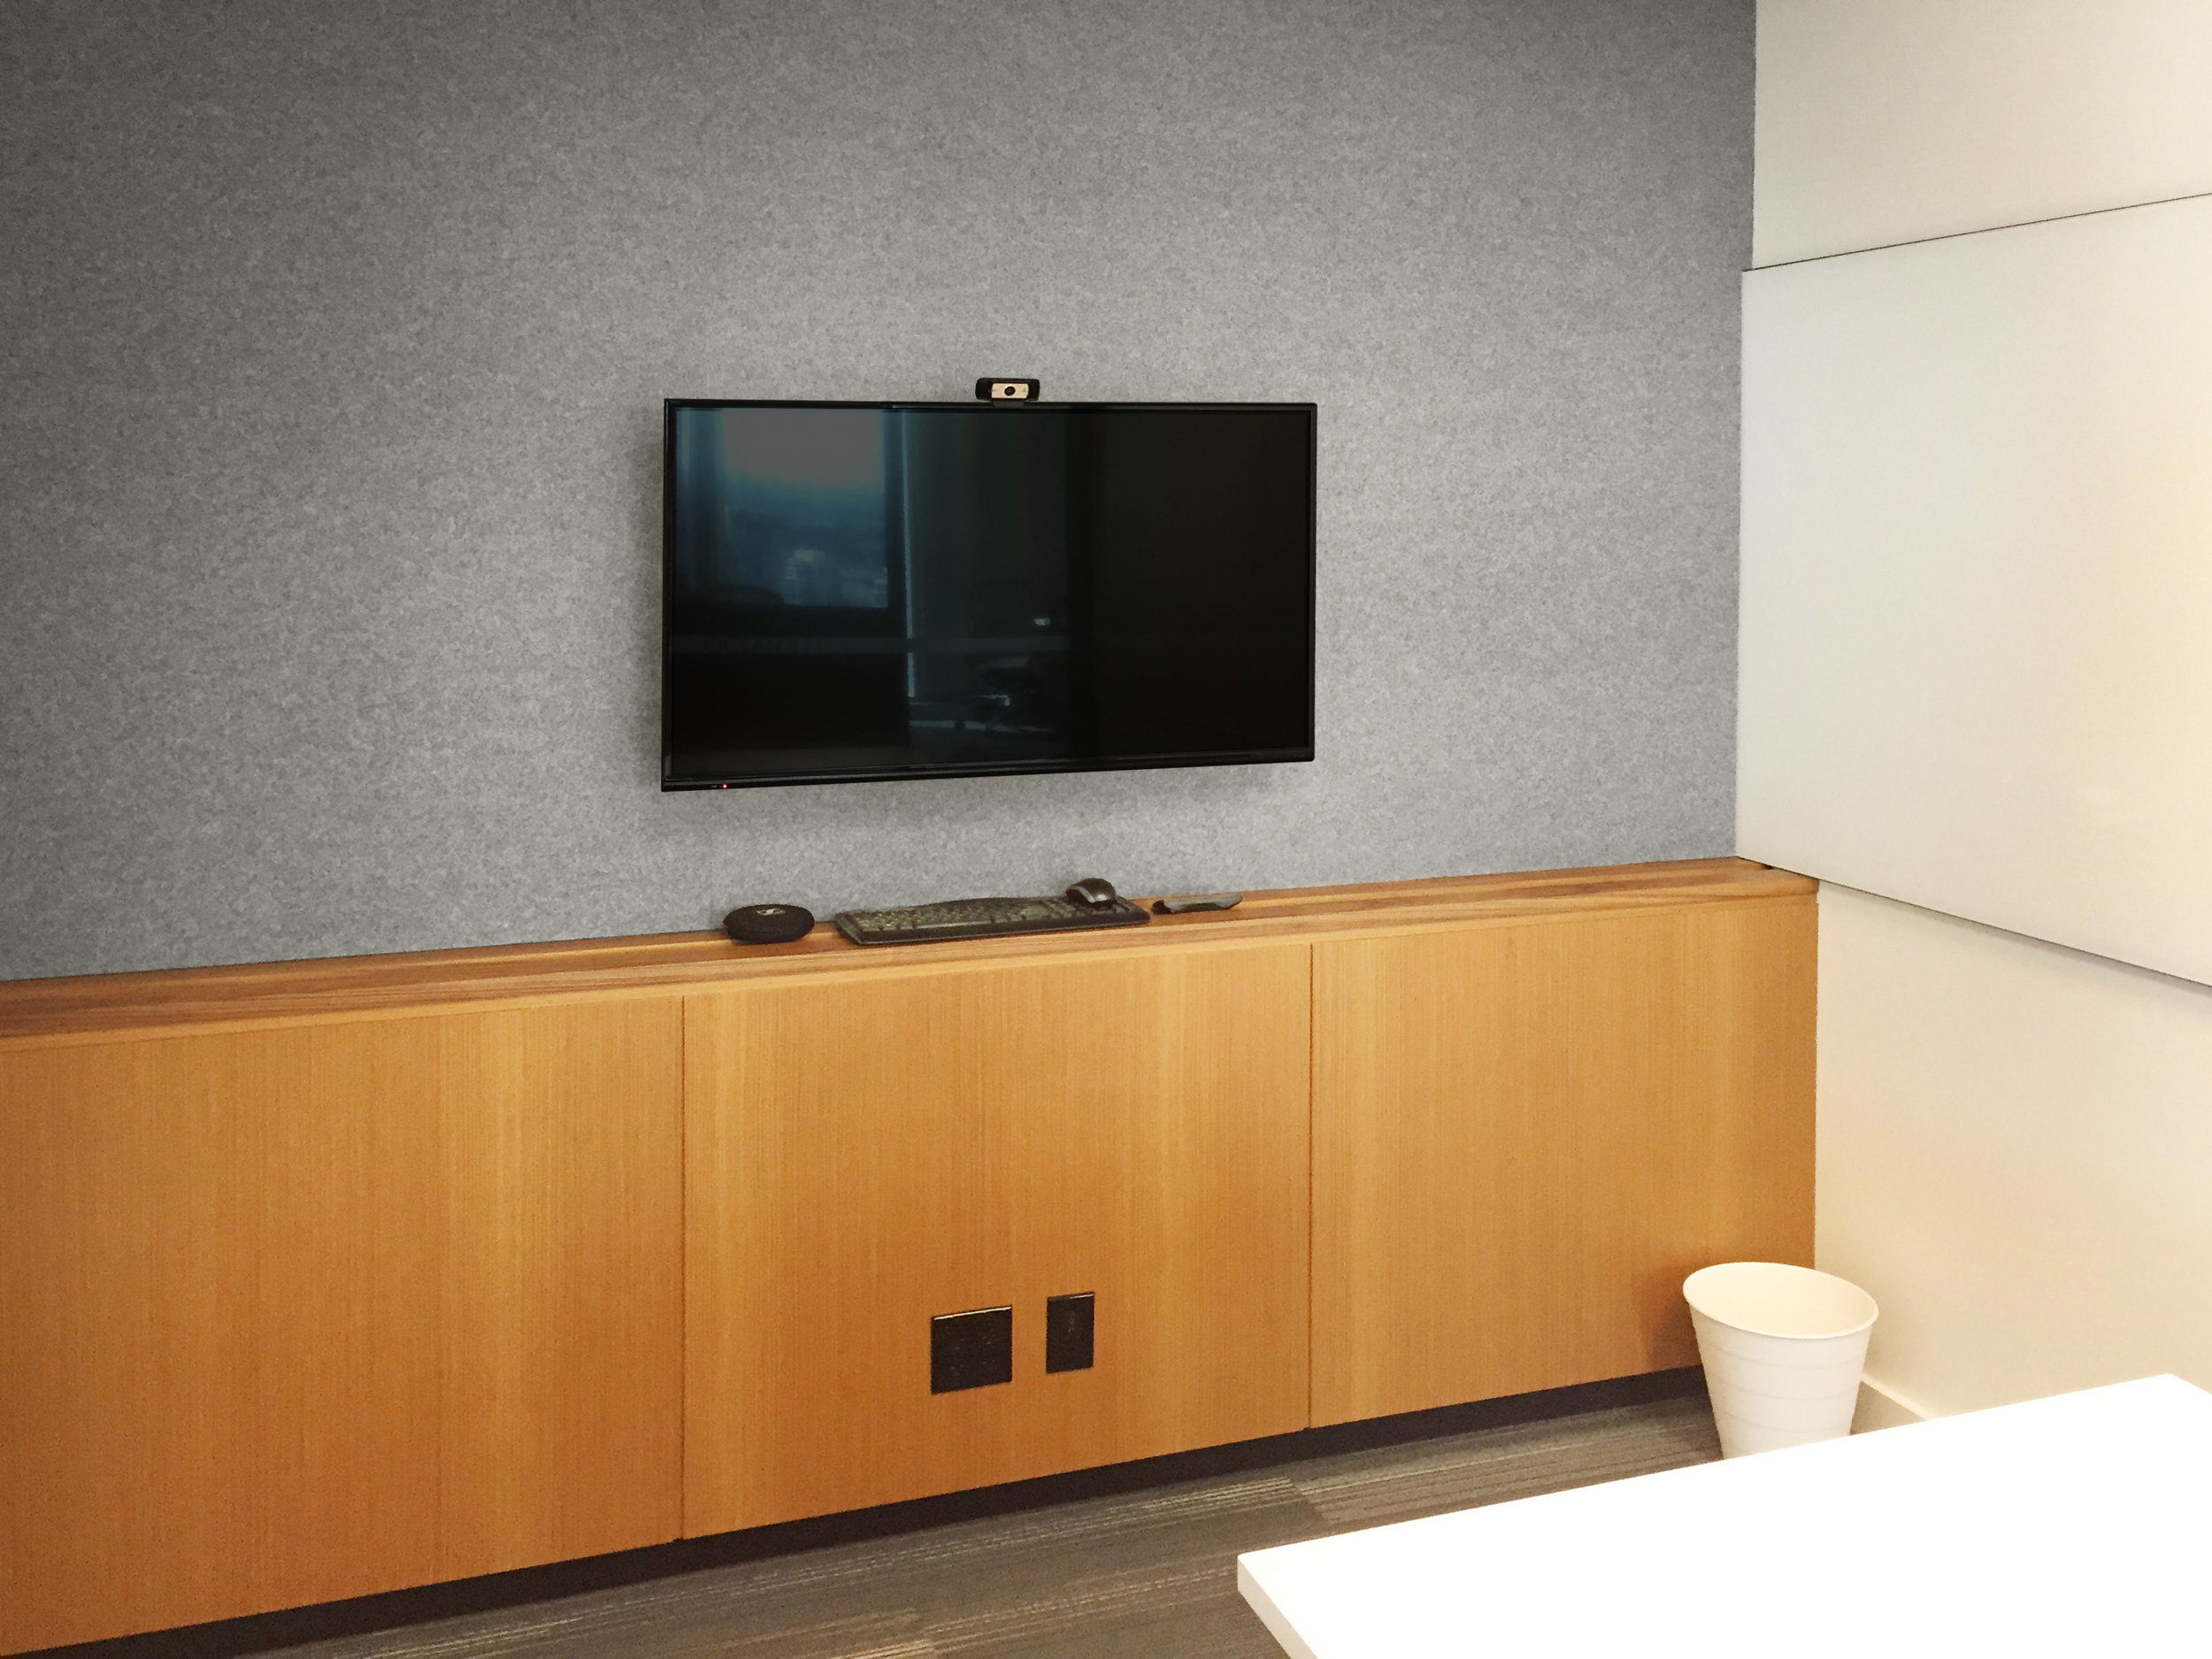 With ultimate consistency, each of the basic meeting spaces is equipped with a TV, a local computer with video conferencing and network access, and an HDMI connection for laptop presentation.